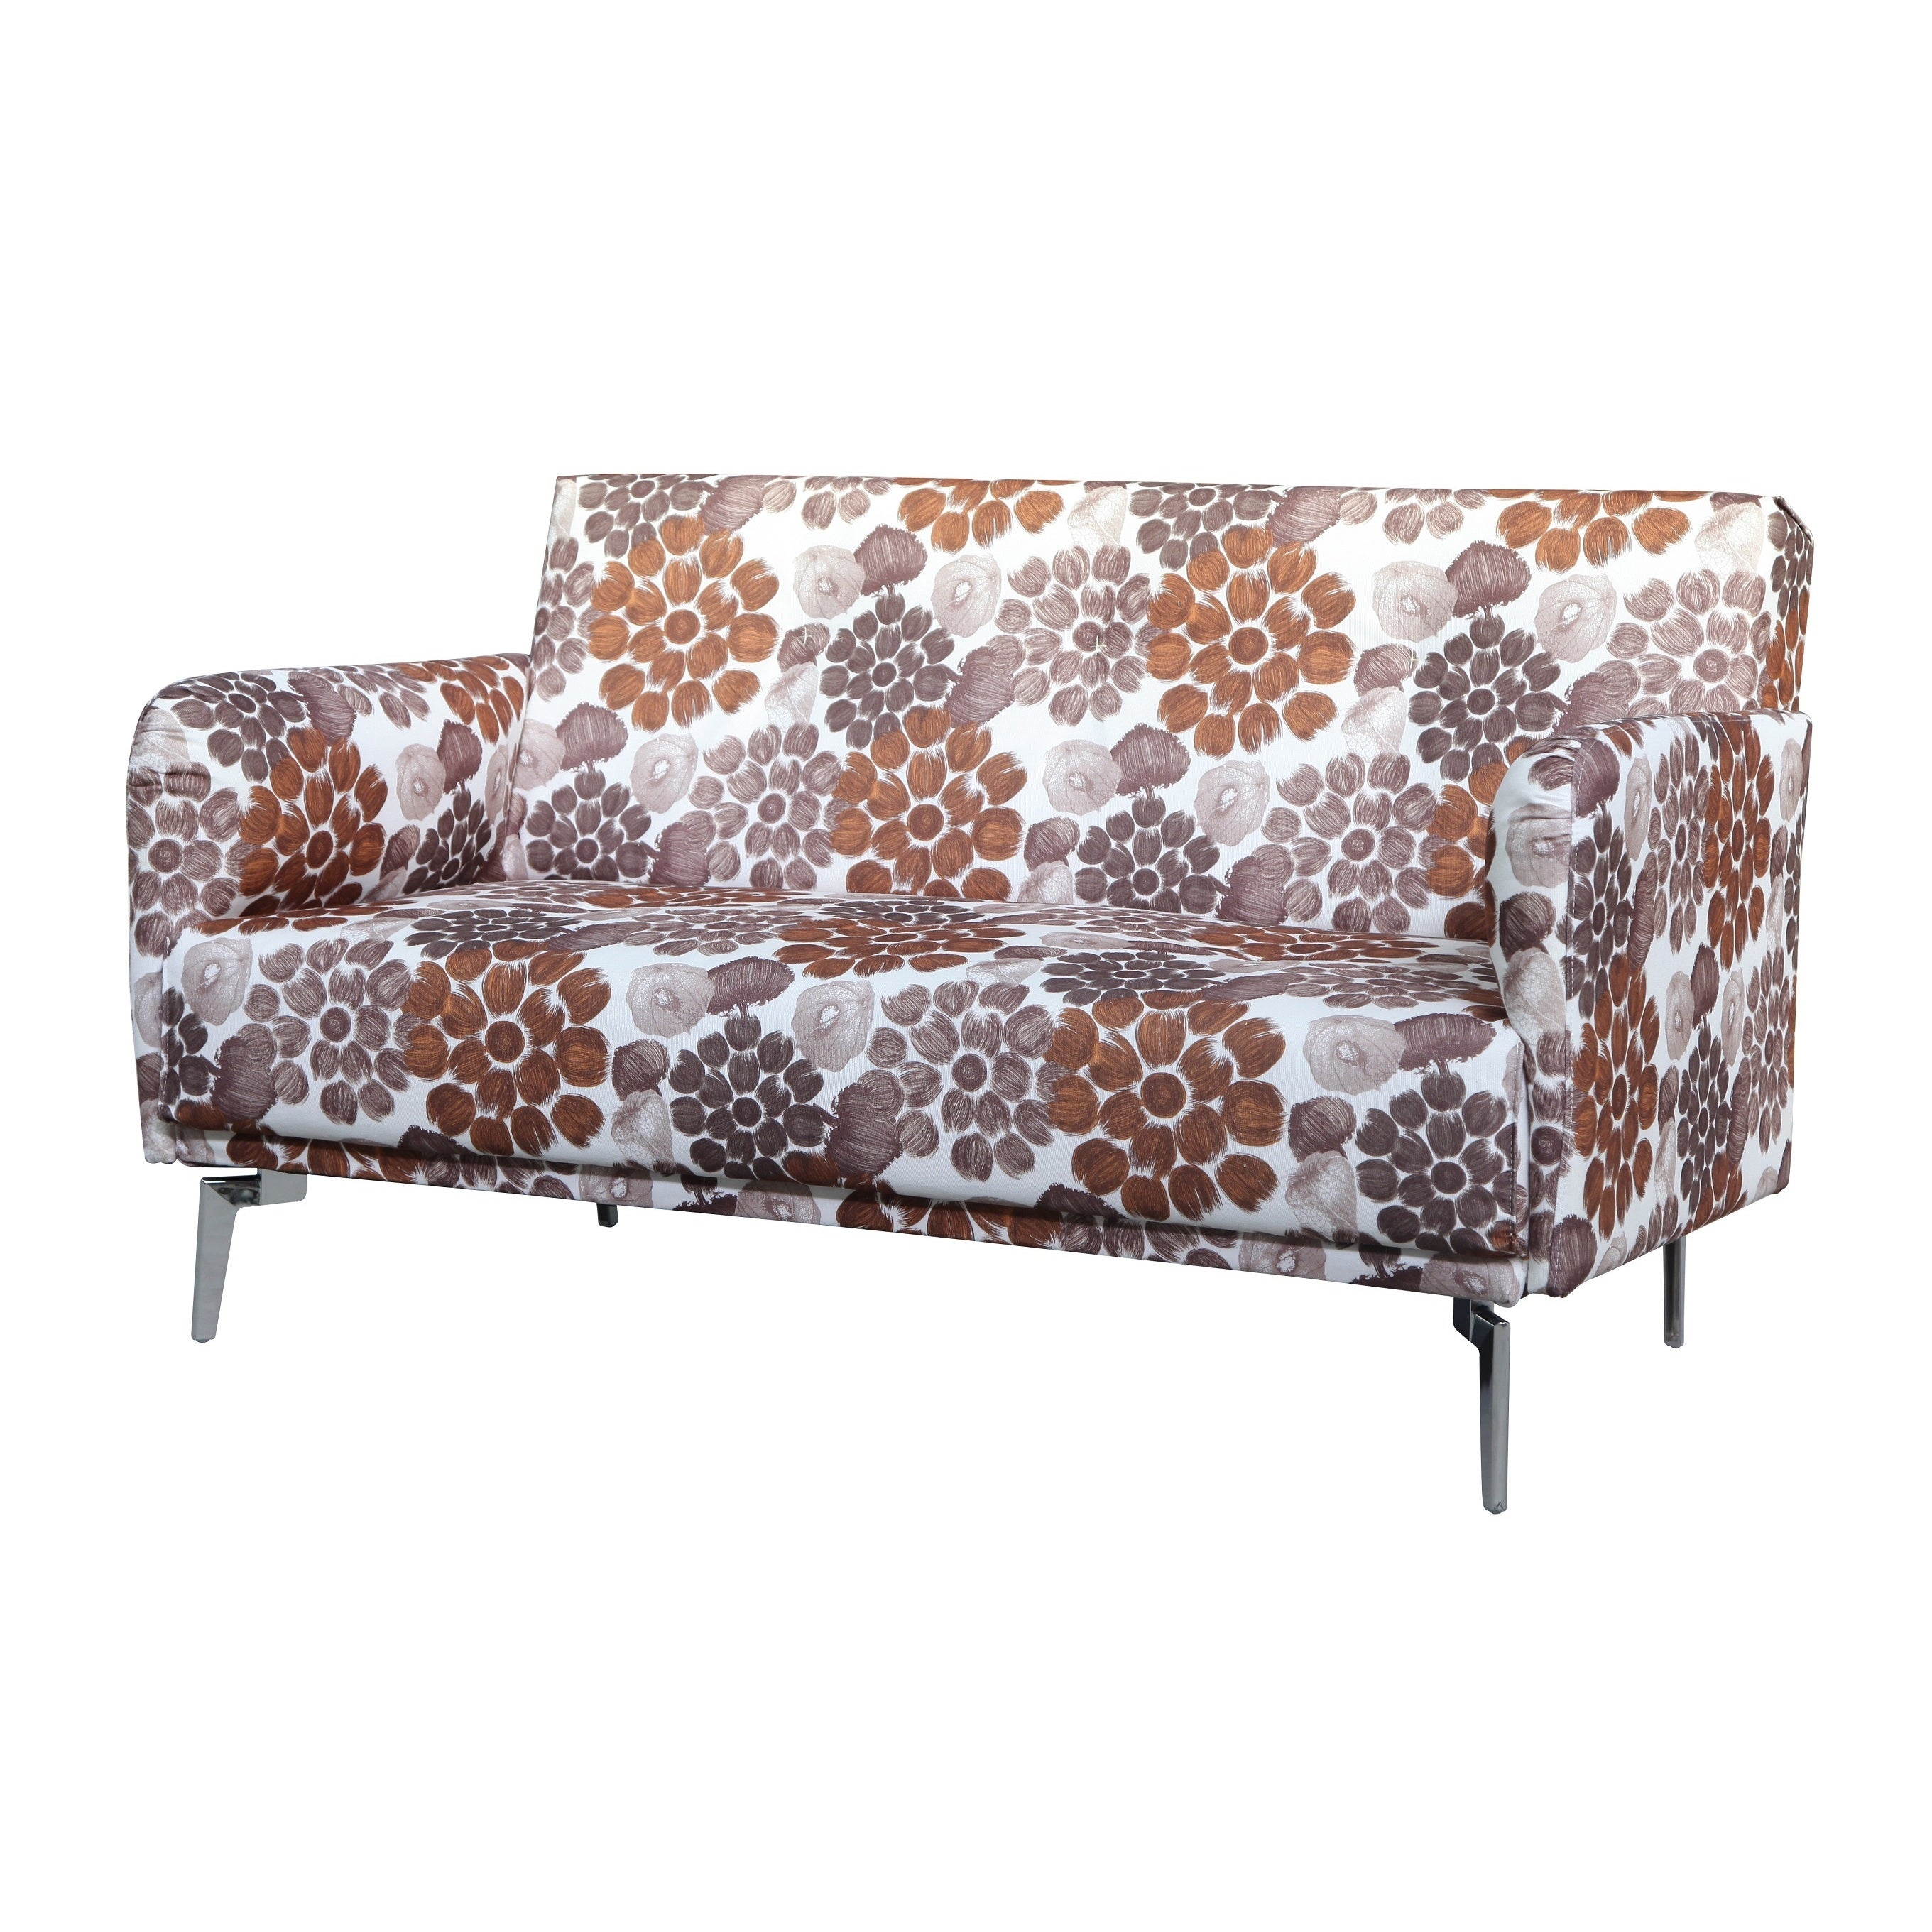 do loveseat product piece slipcover protector pattern set solid xxx furniture